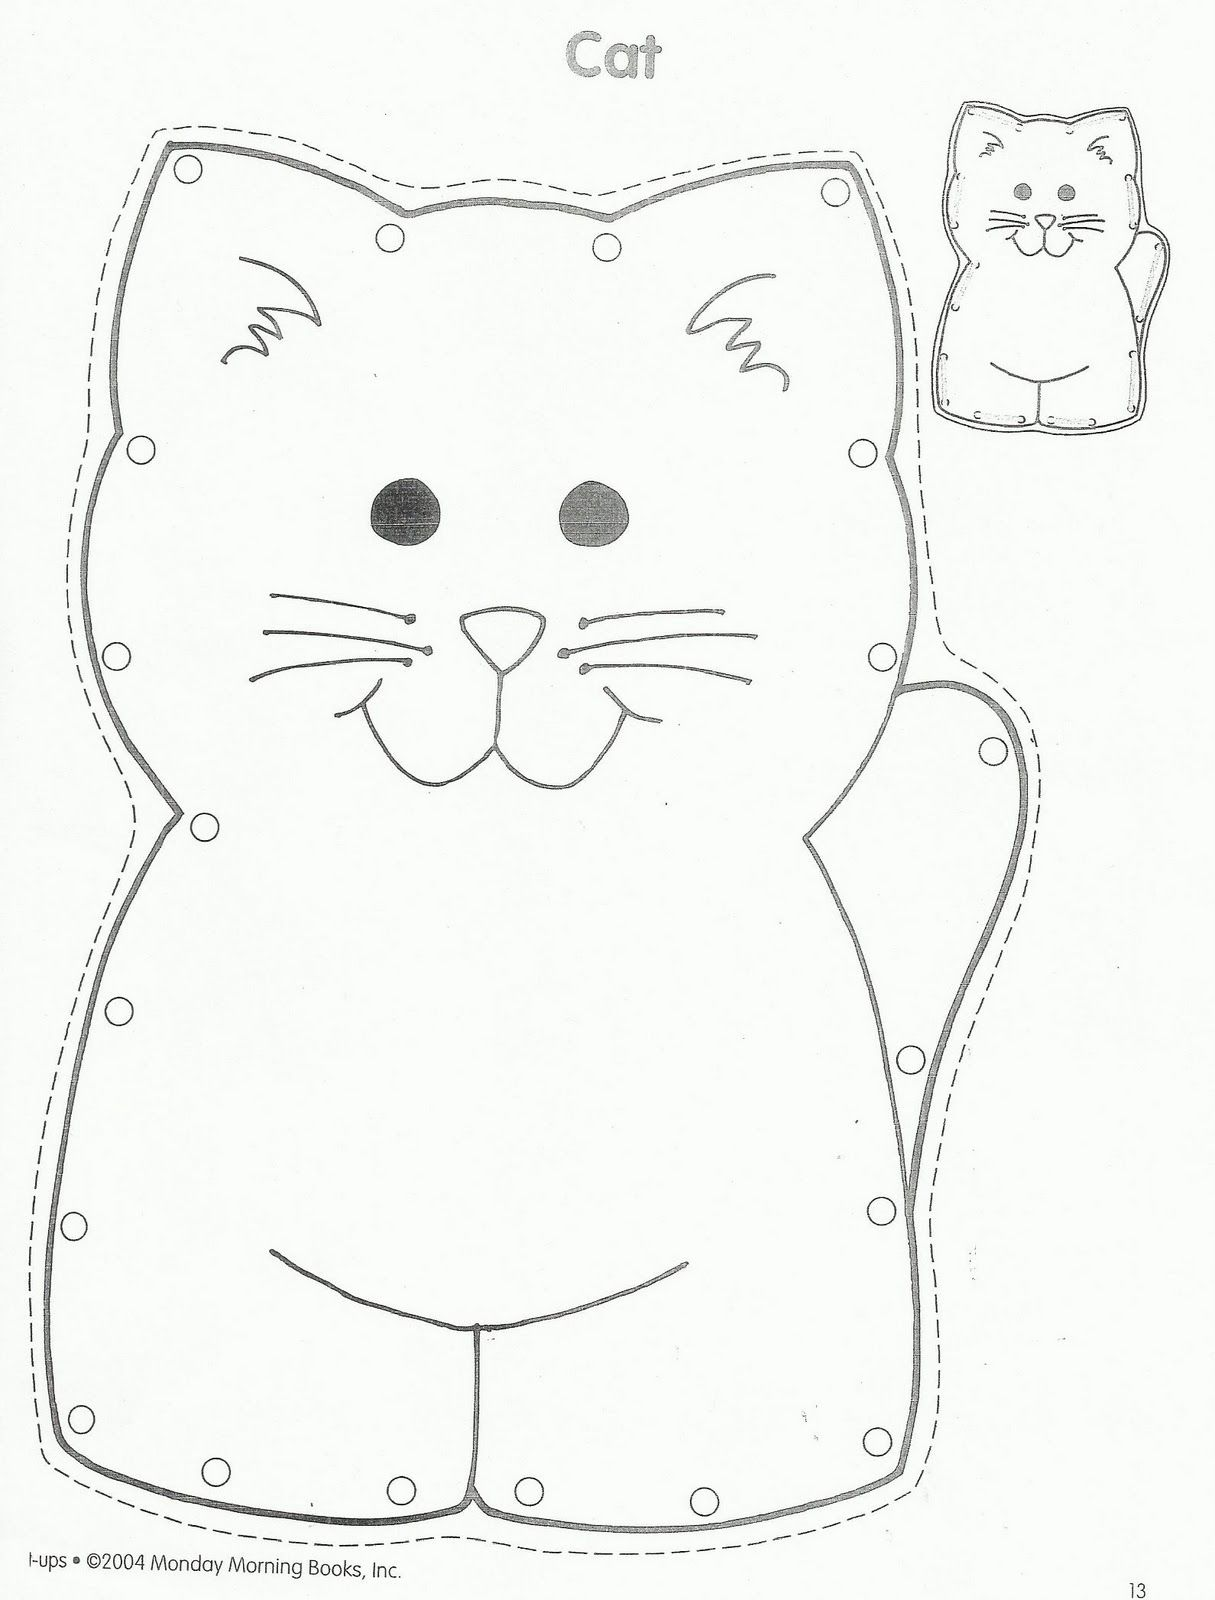 Squish Preschool Ideas- have children color cat and then